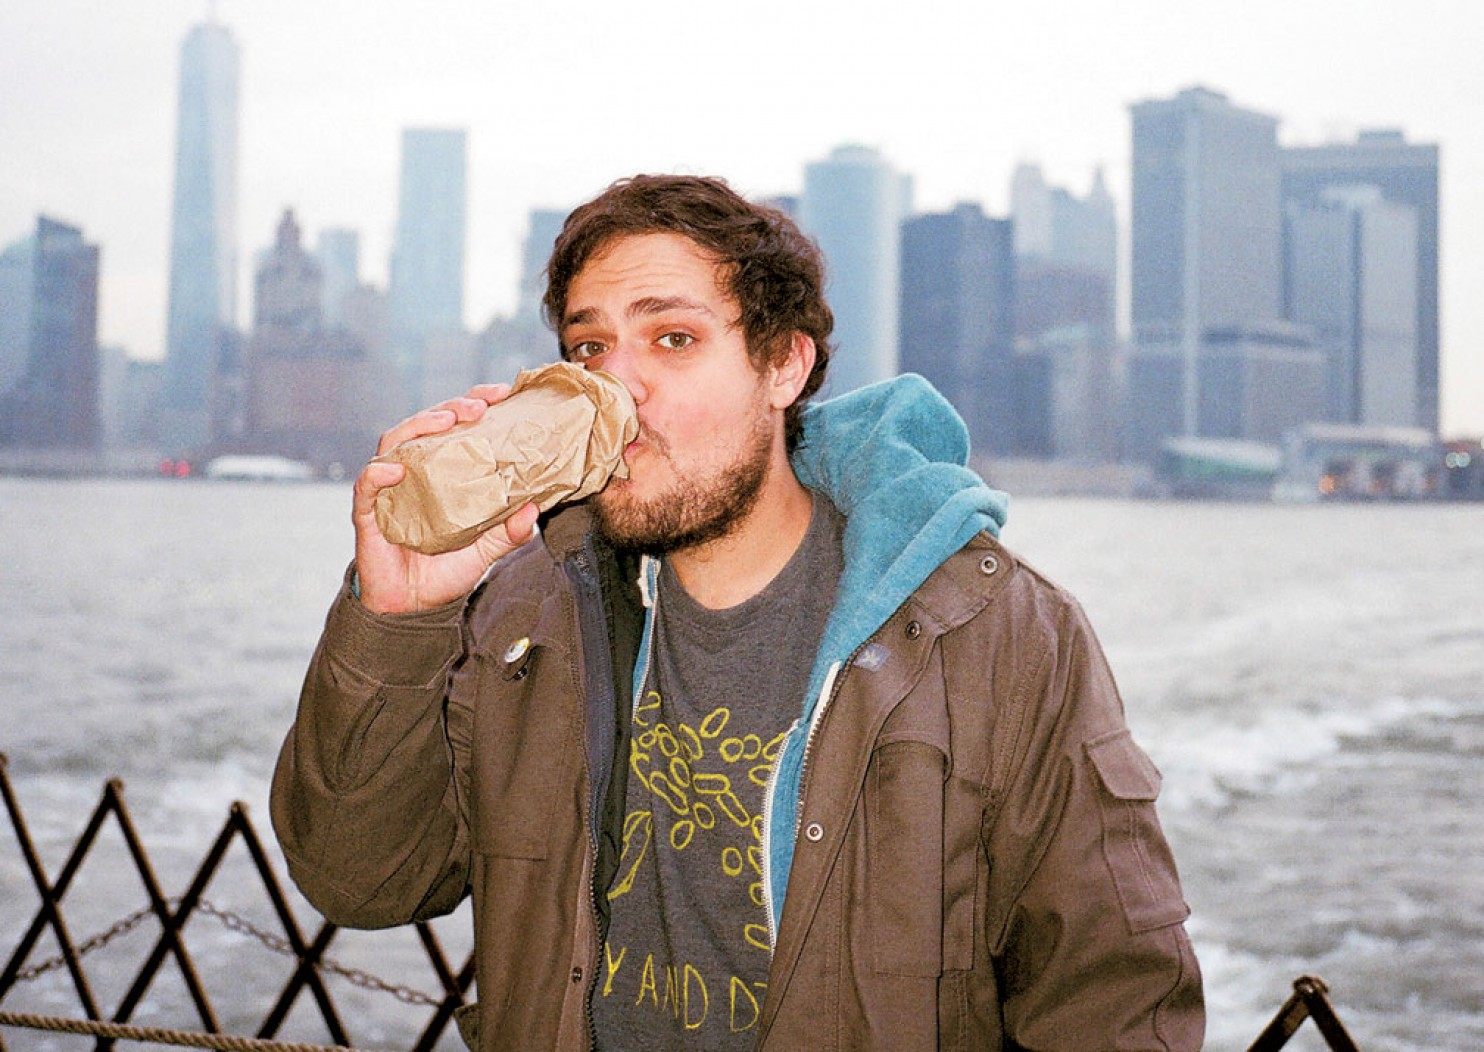 Jeff Rosenstock Announces Co-Headline Tour with Dan Andriano In The Emergency Room